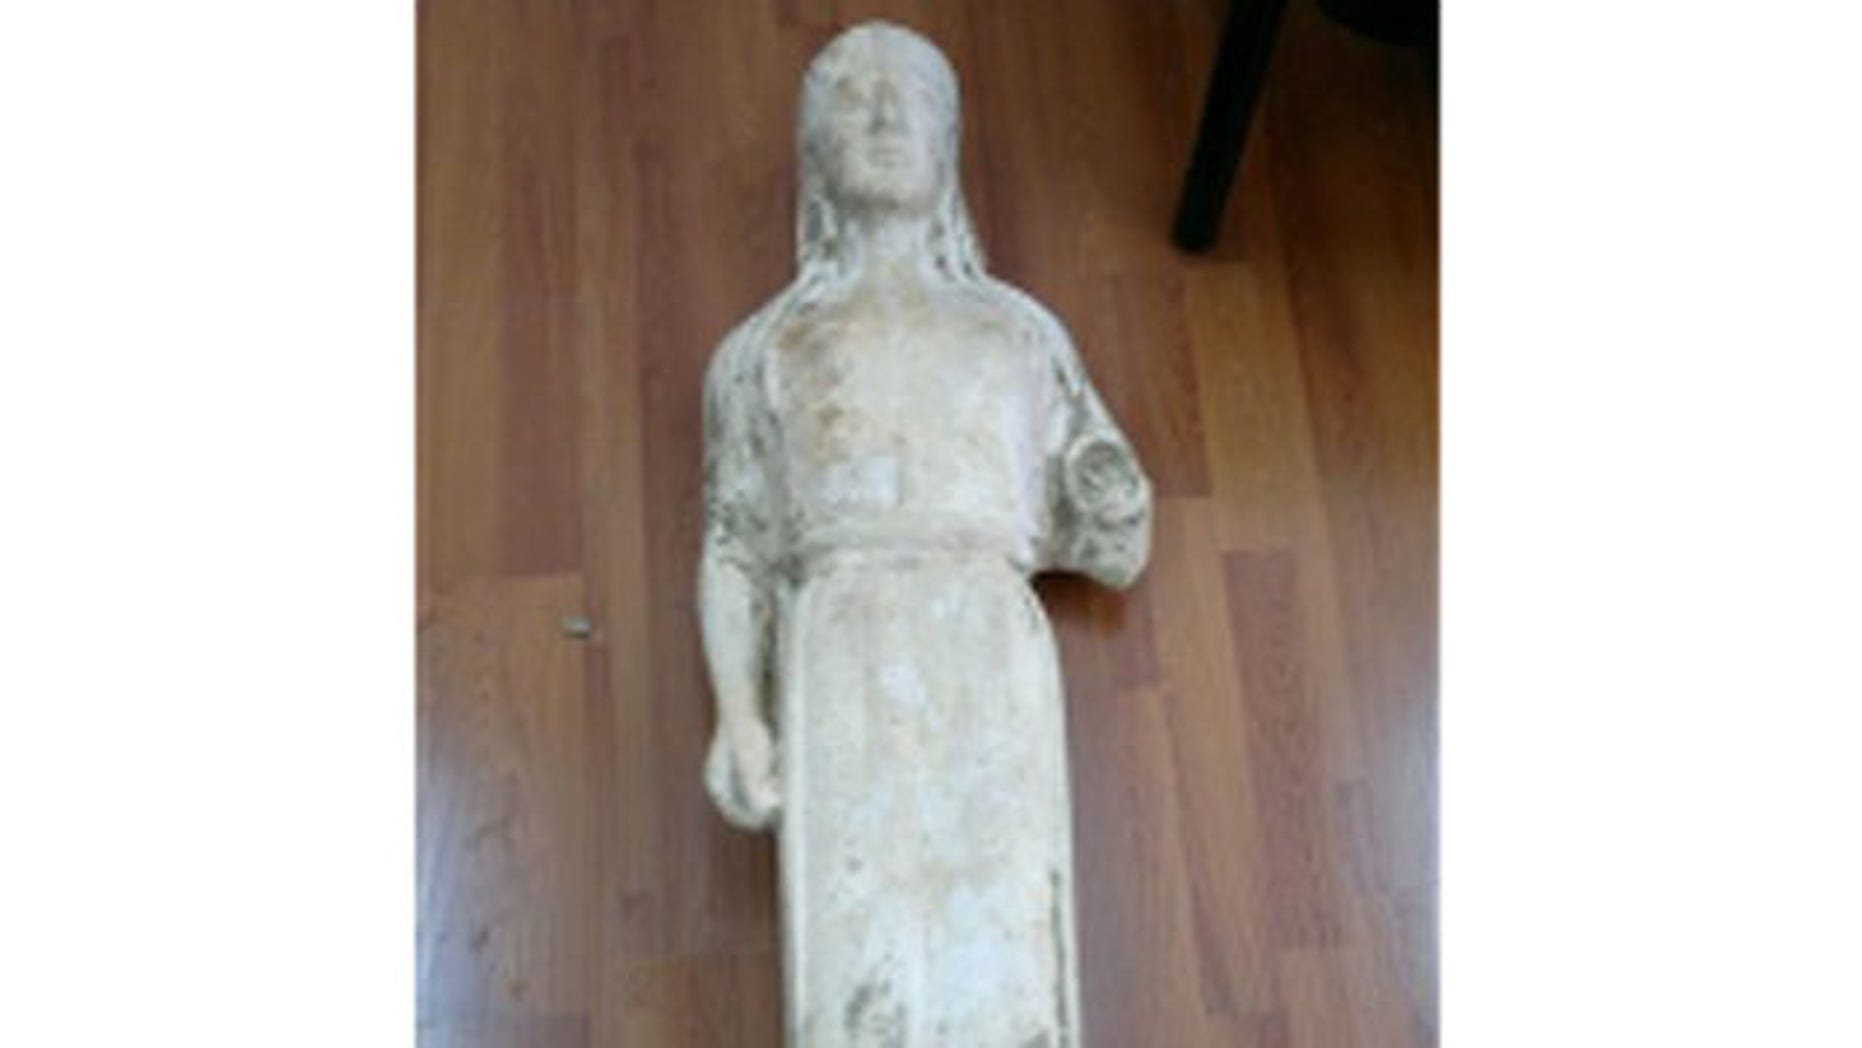 March 28, 2012: A 2,500-year-old statue of a young woman that was illegally excavated and hidden in a goat-pen near Athens is seen in this police handout photo.